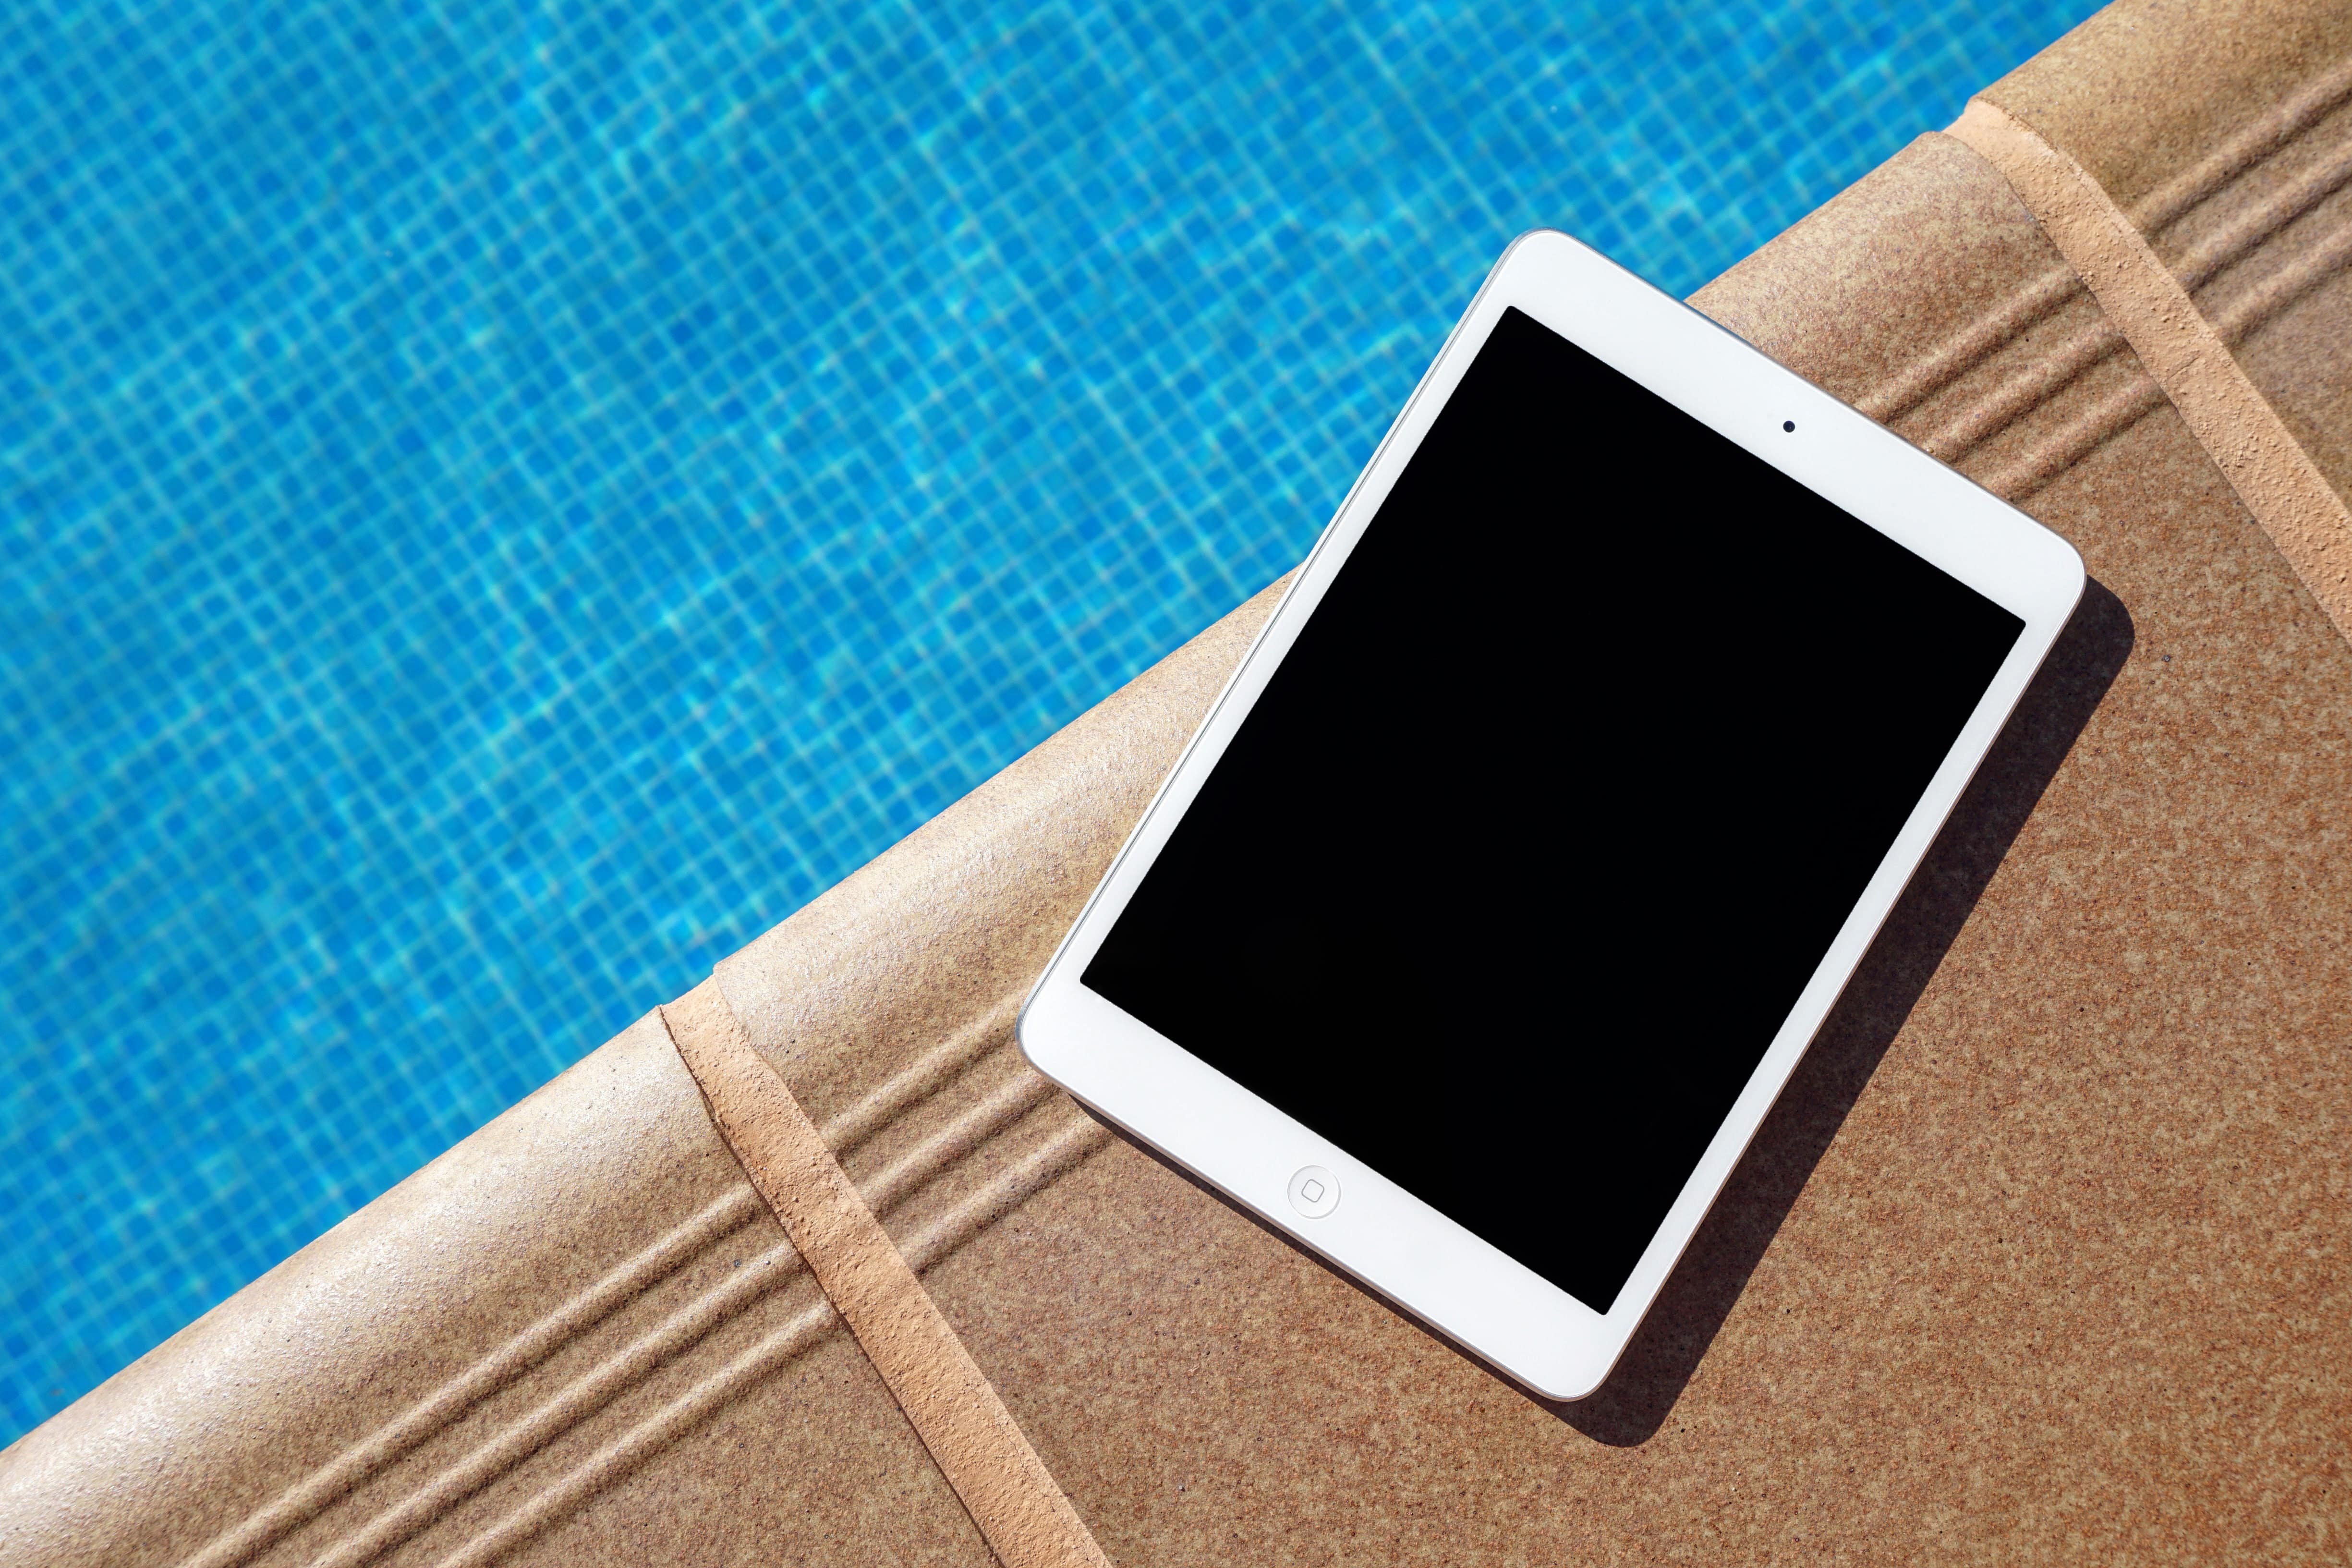 A facility scheduling system is vital for swimming pool bookings